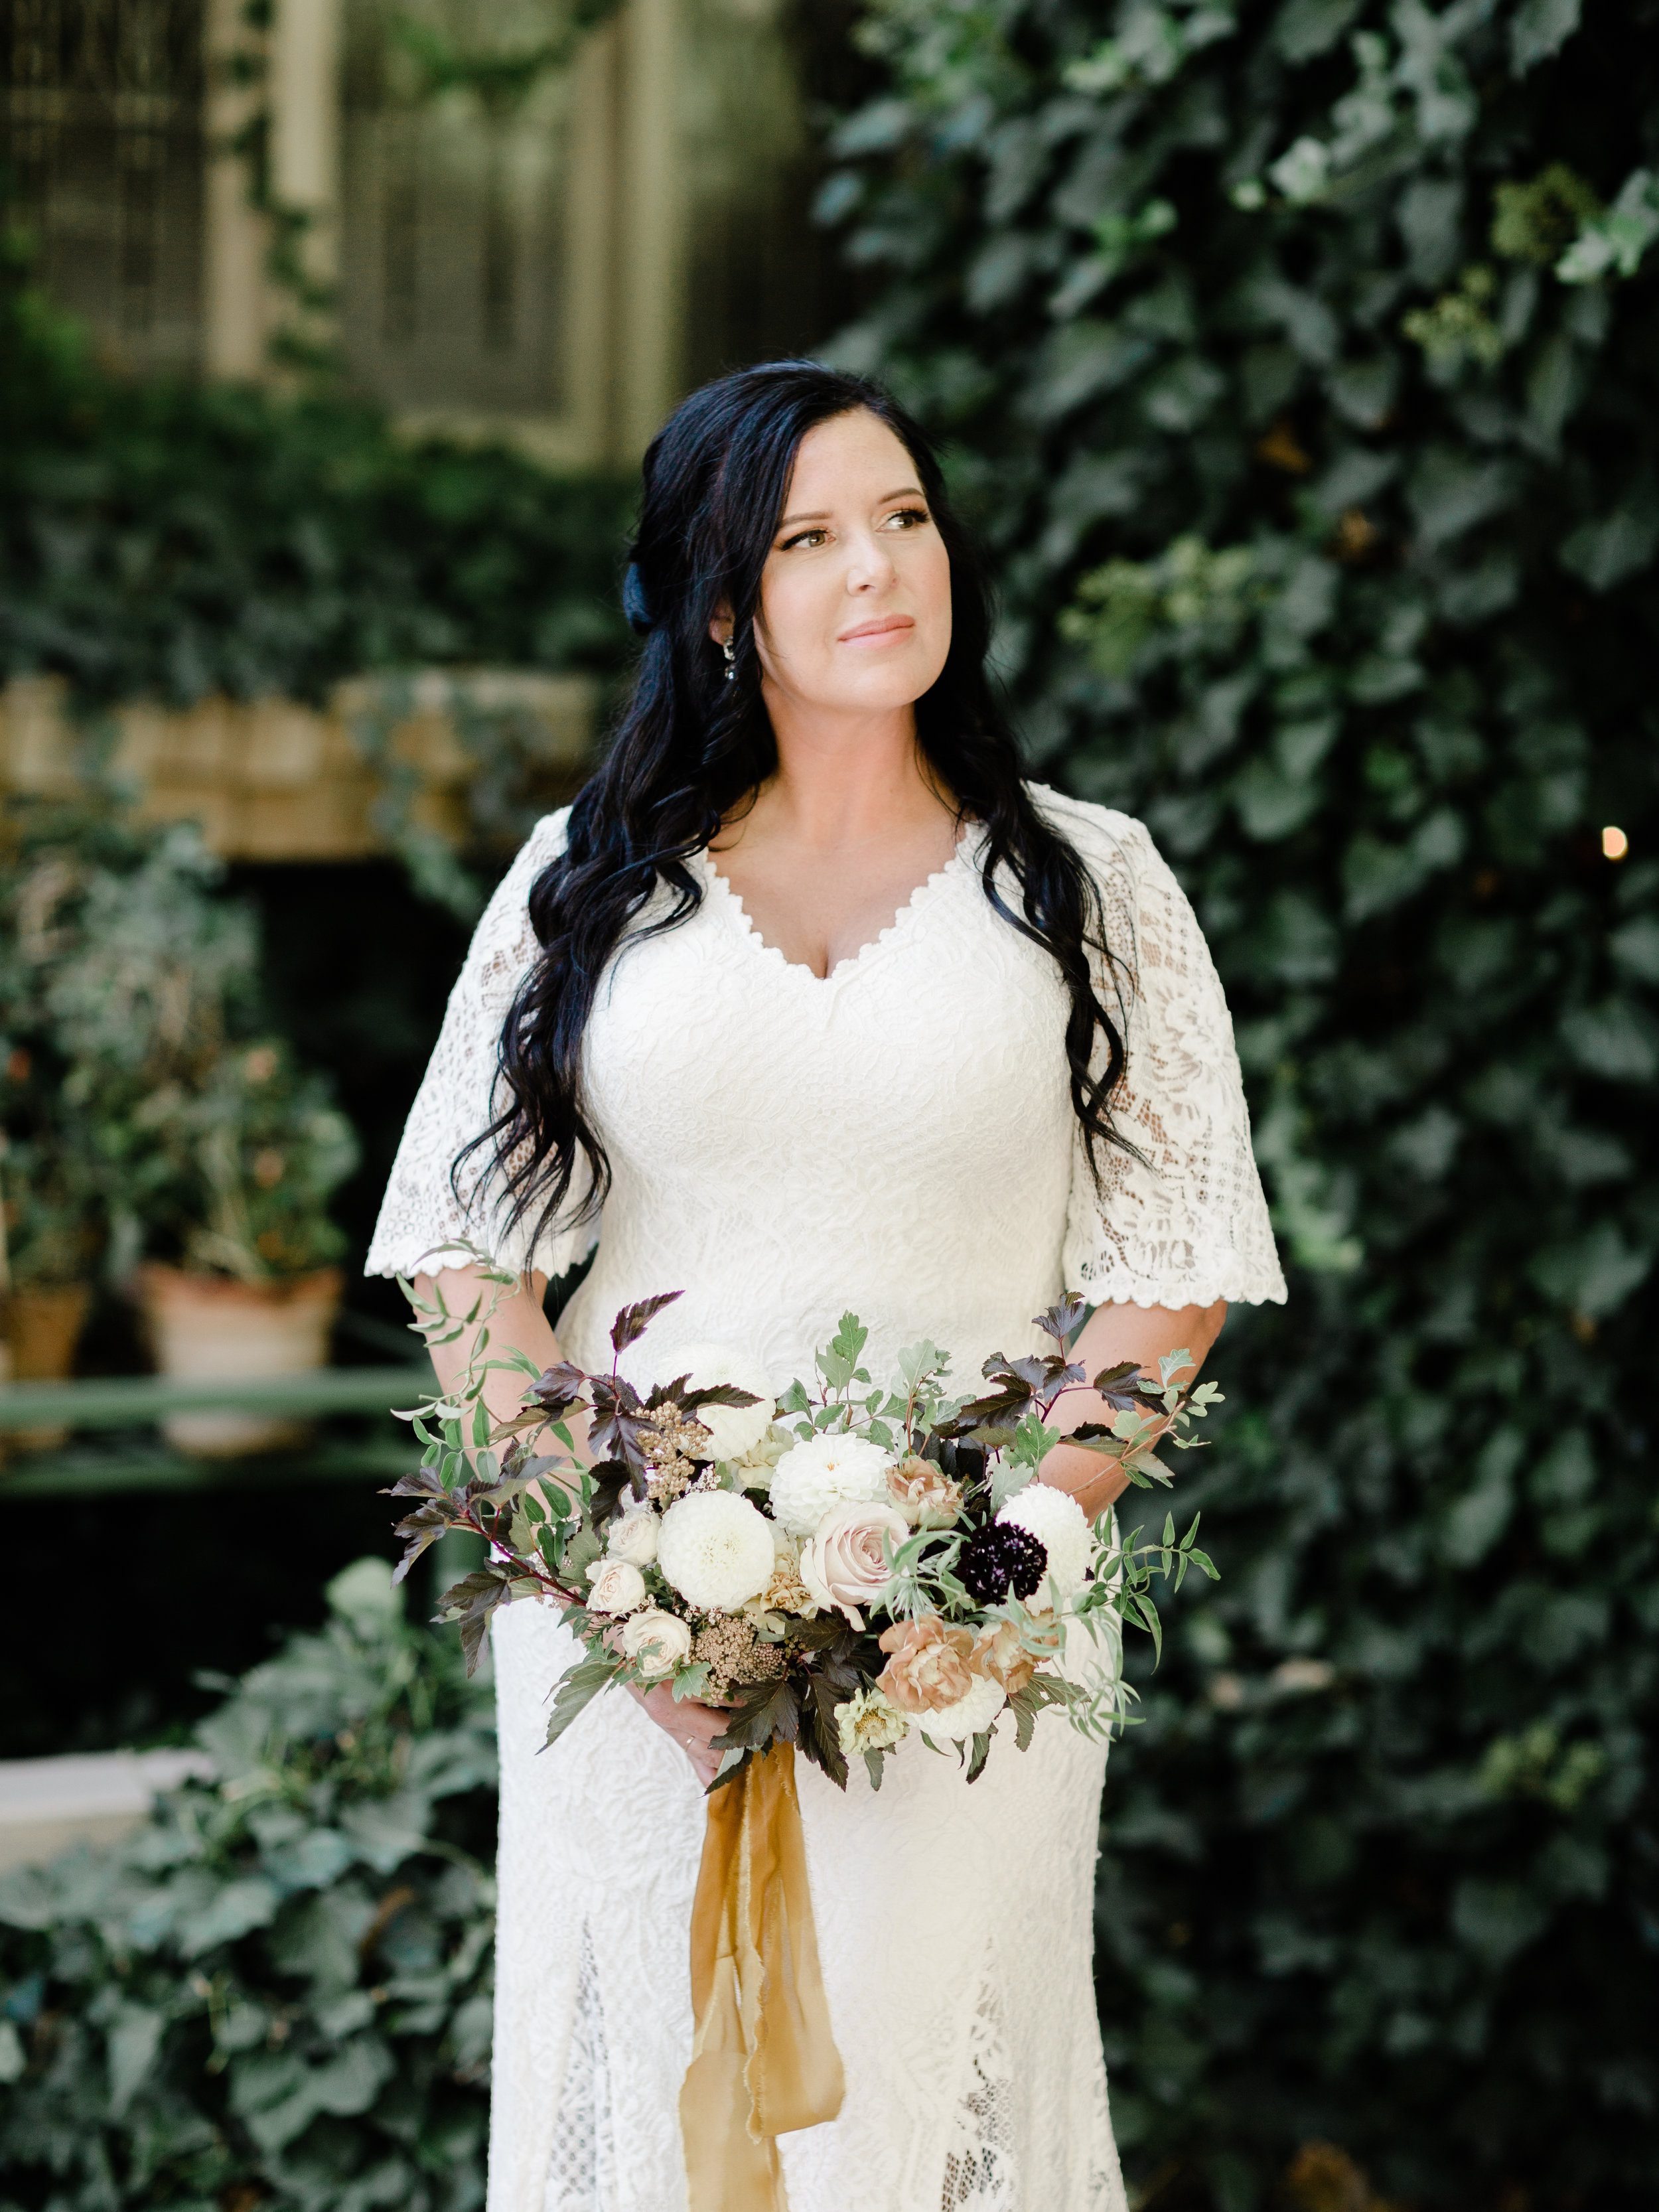 Old world inspired bridal bouquet for this early Autumn wedding with dark foliages and tied with a soft golden ribbon